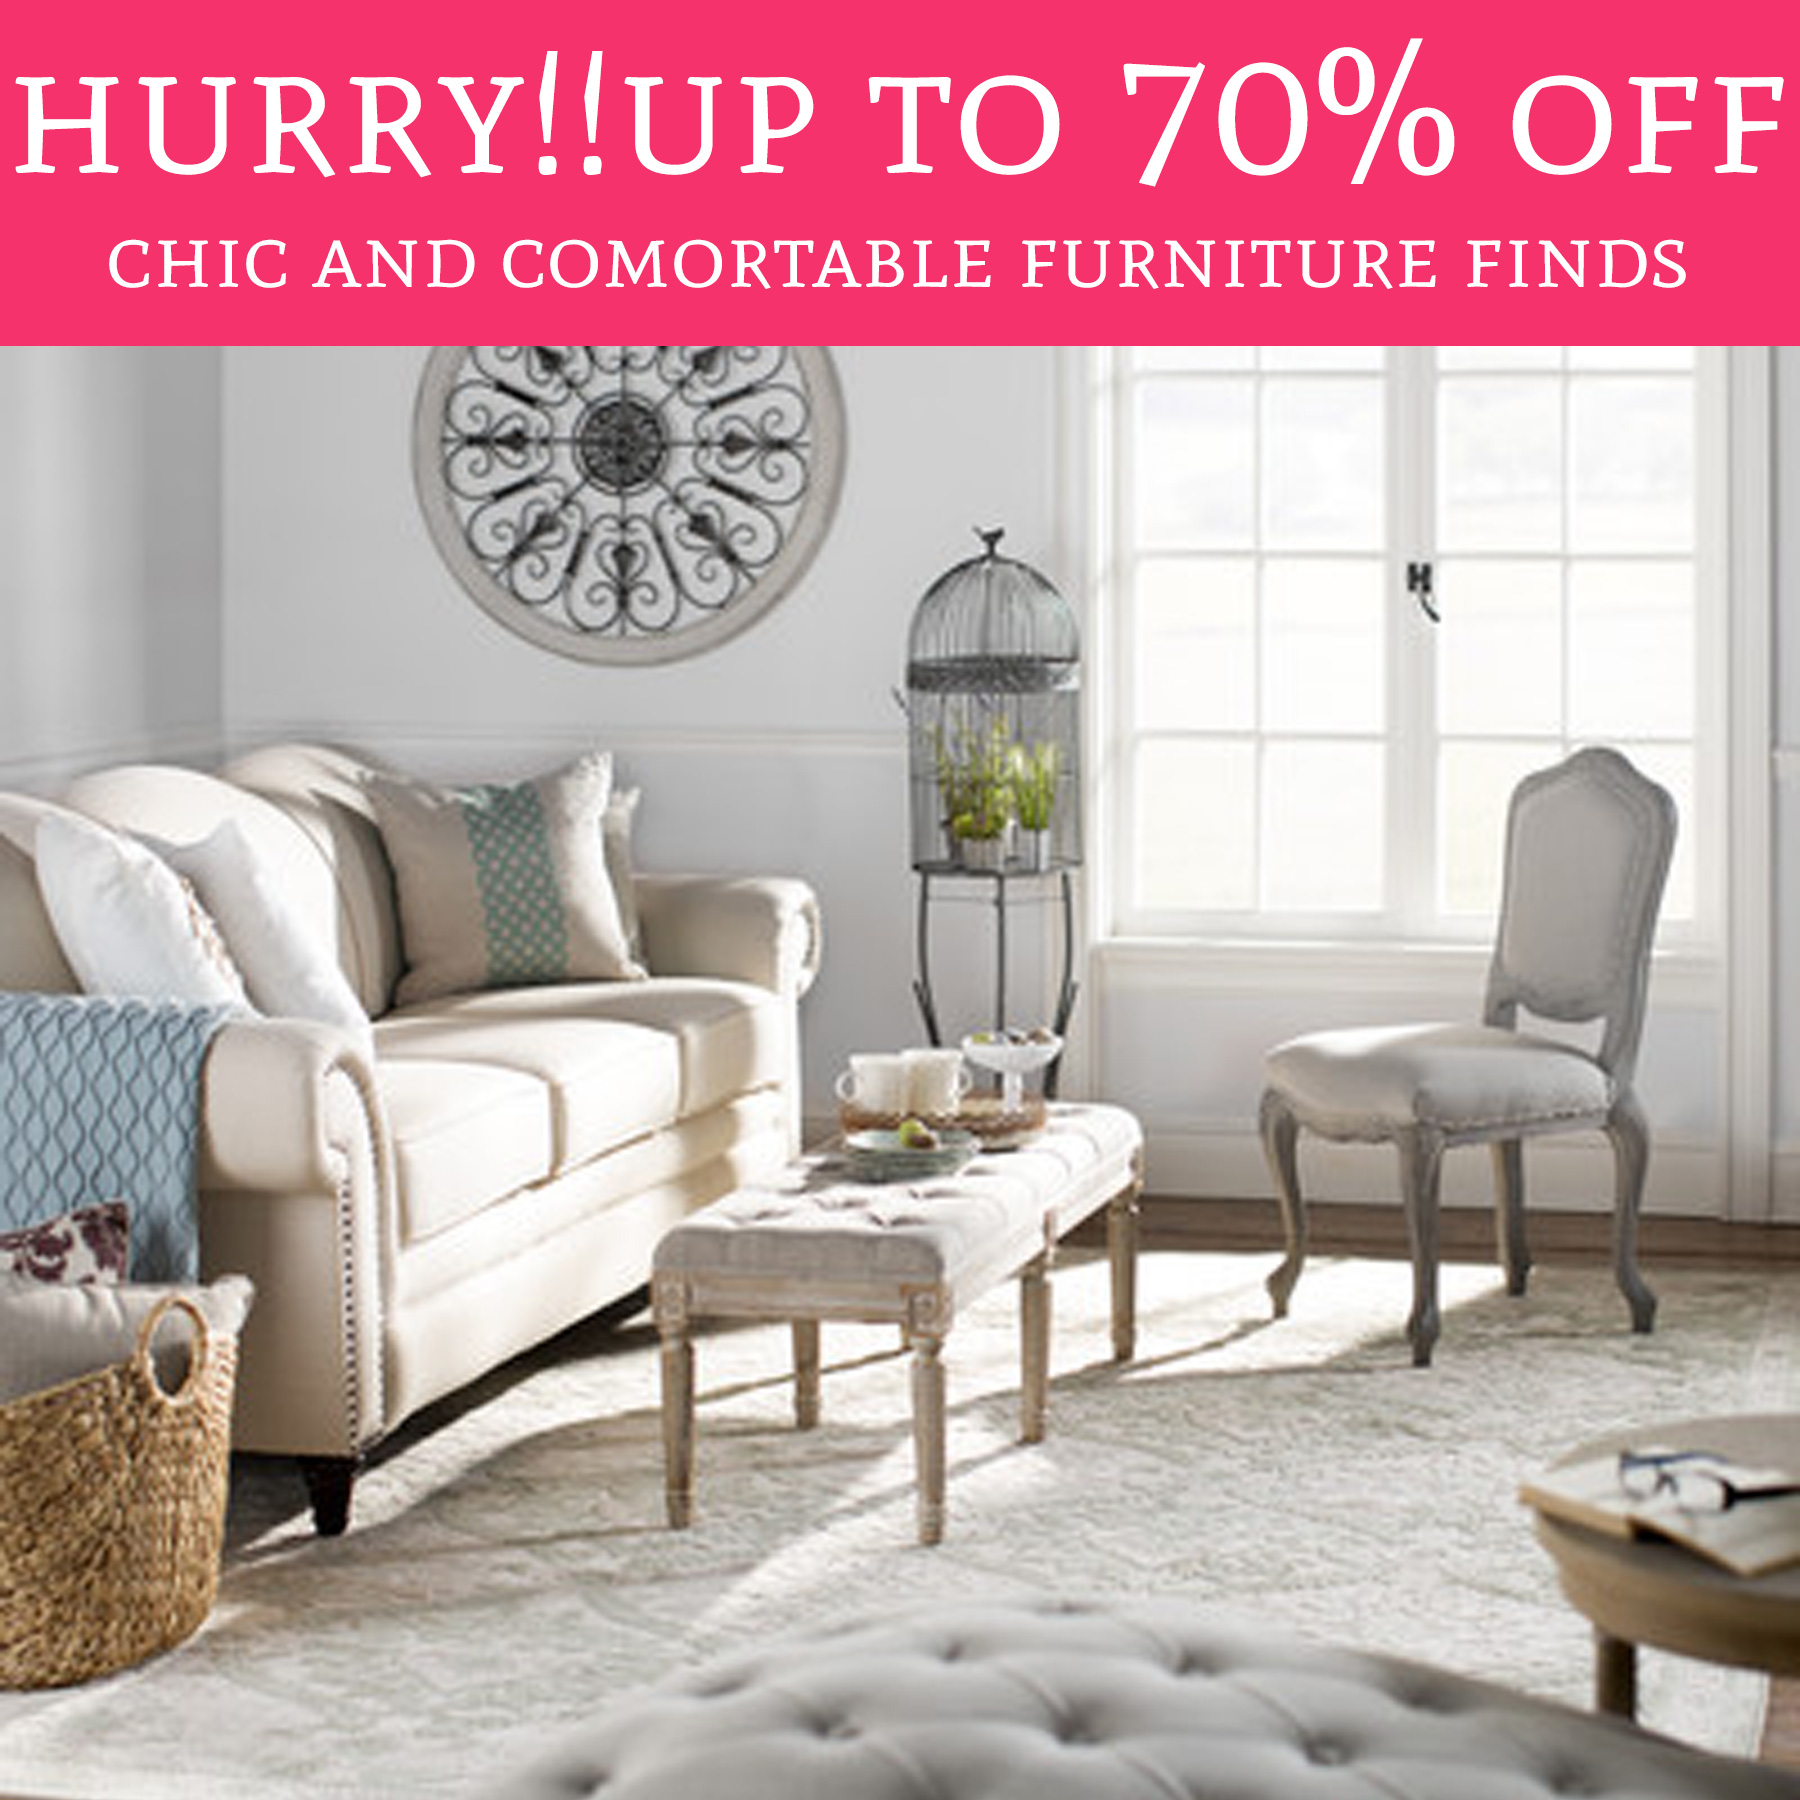 Up to 70 off chic and comfortable furniture finds deal for Furniture 70 off